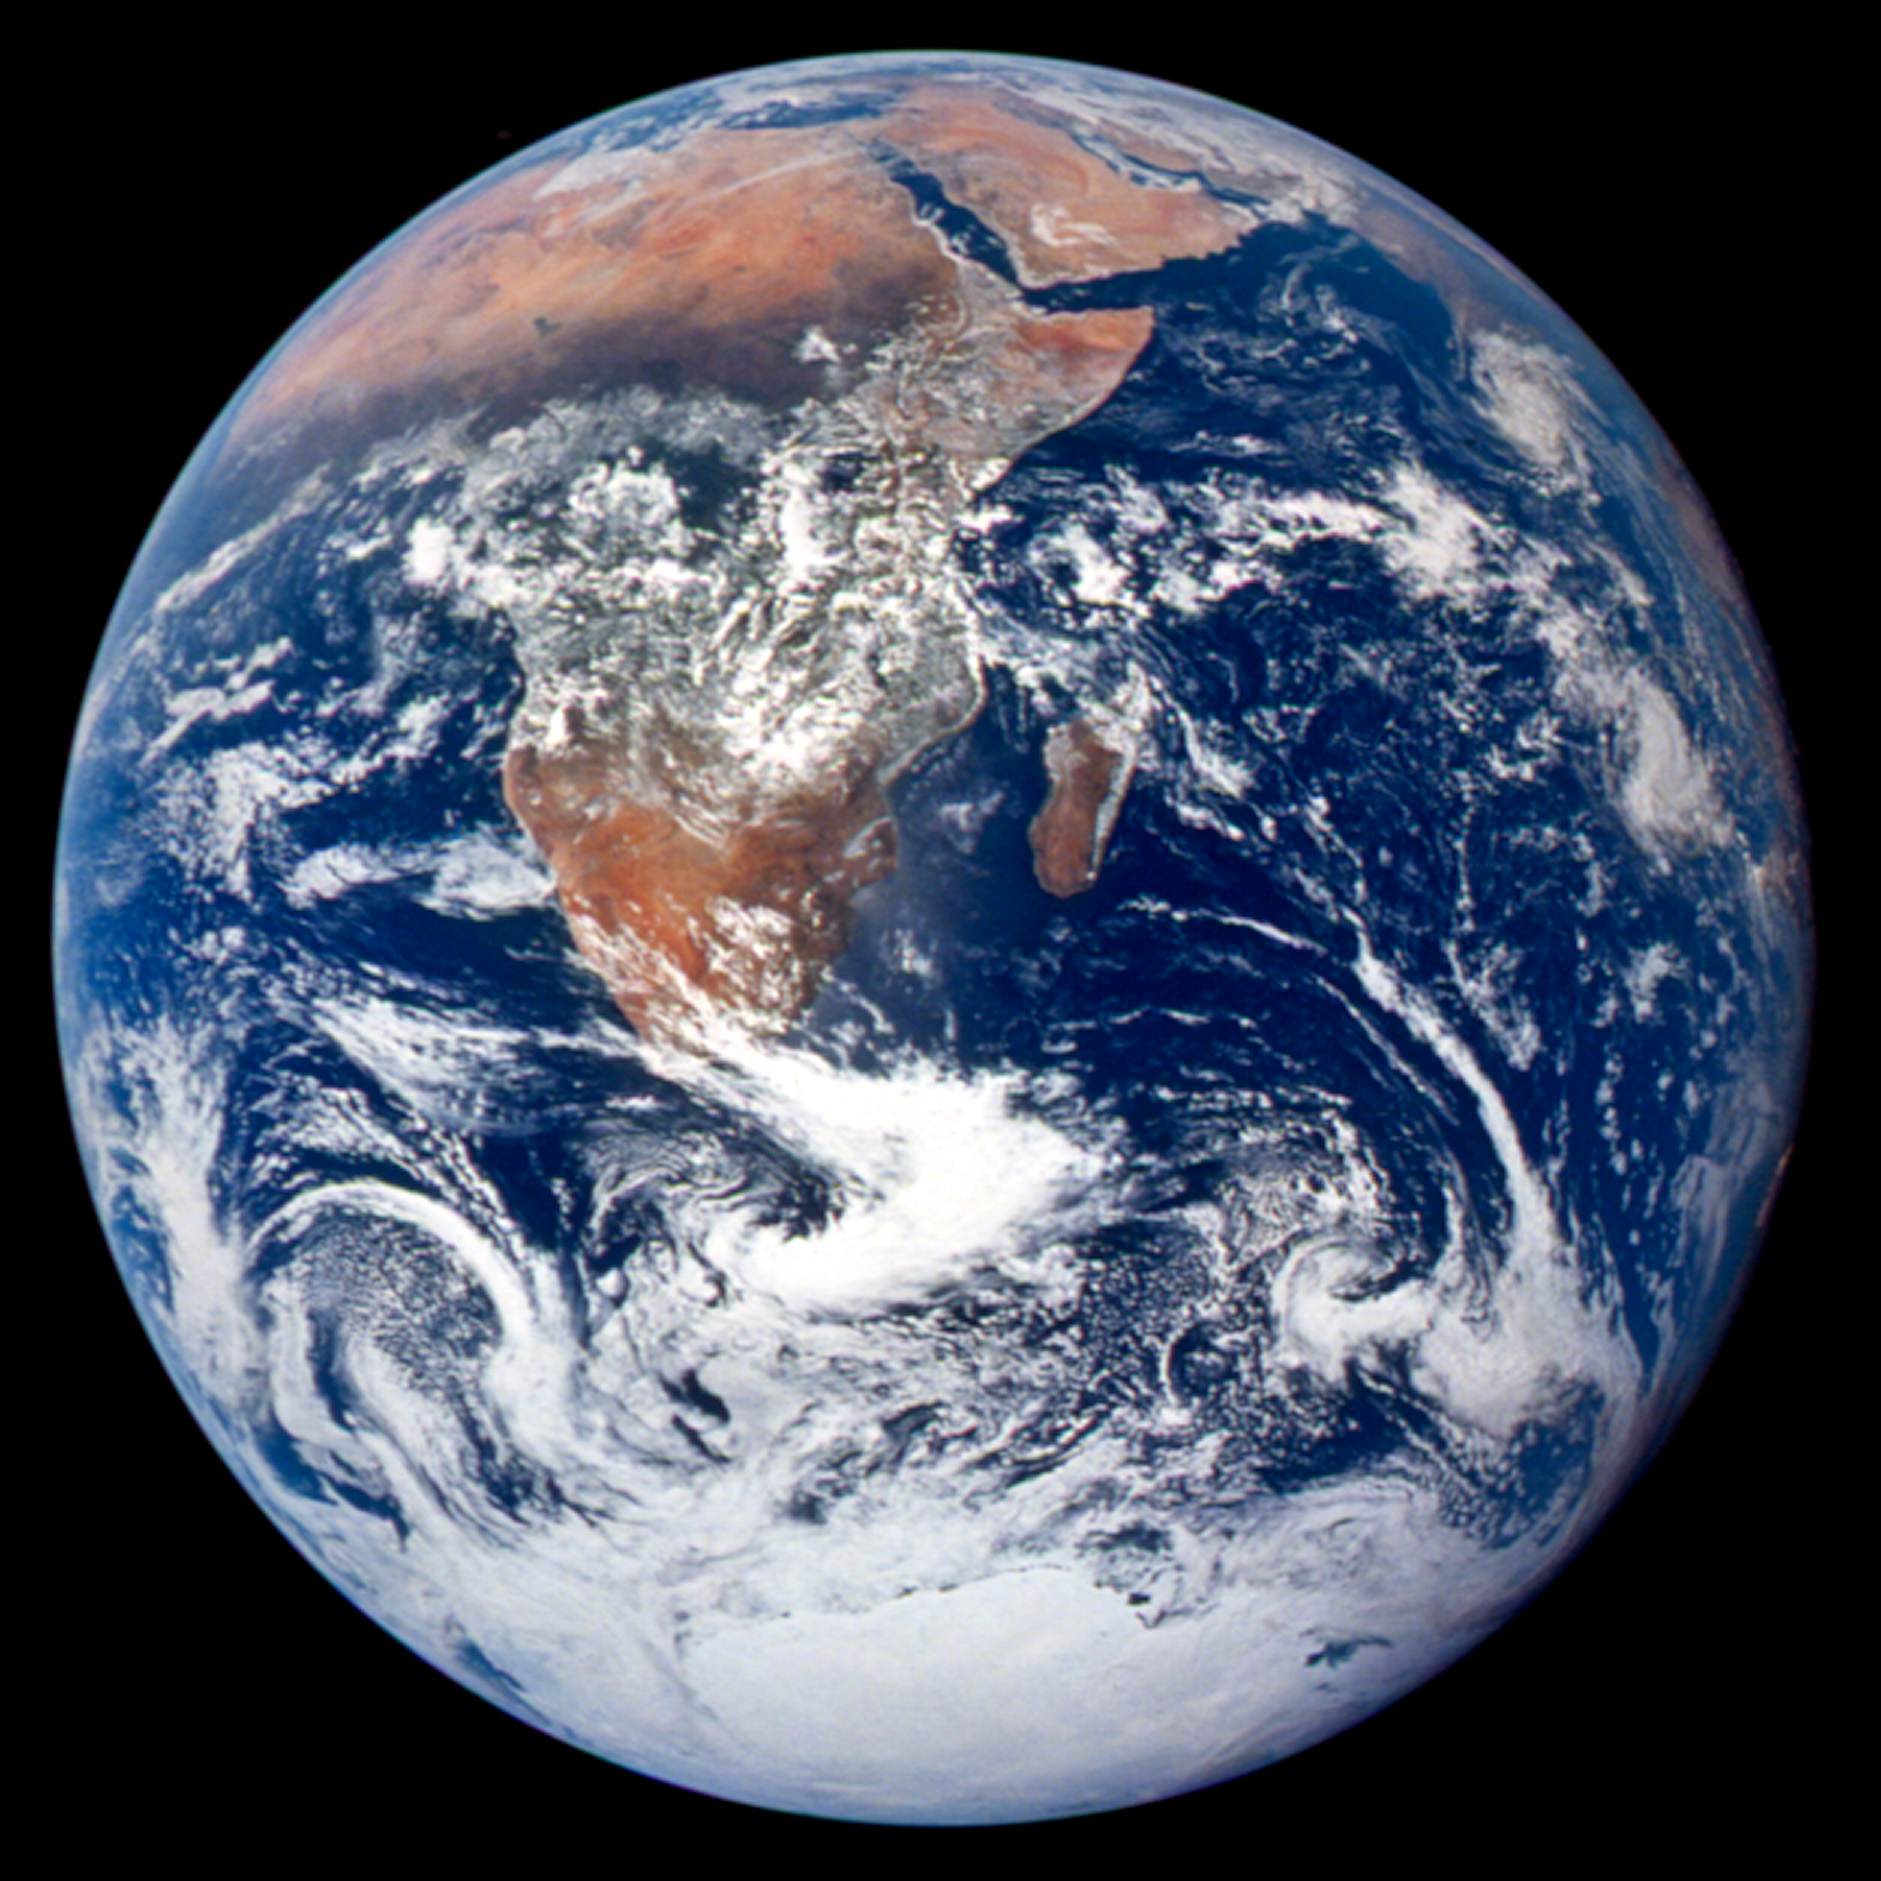 This classic picture of Earth was taken on Dec. 7, 1972, by the Apollo 17 crew on its way to the moon. It captures the space between the Mediterranean Sea and the Antarctica South Polar ice cap.  Source: NASA